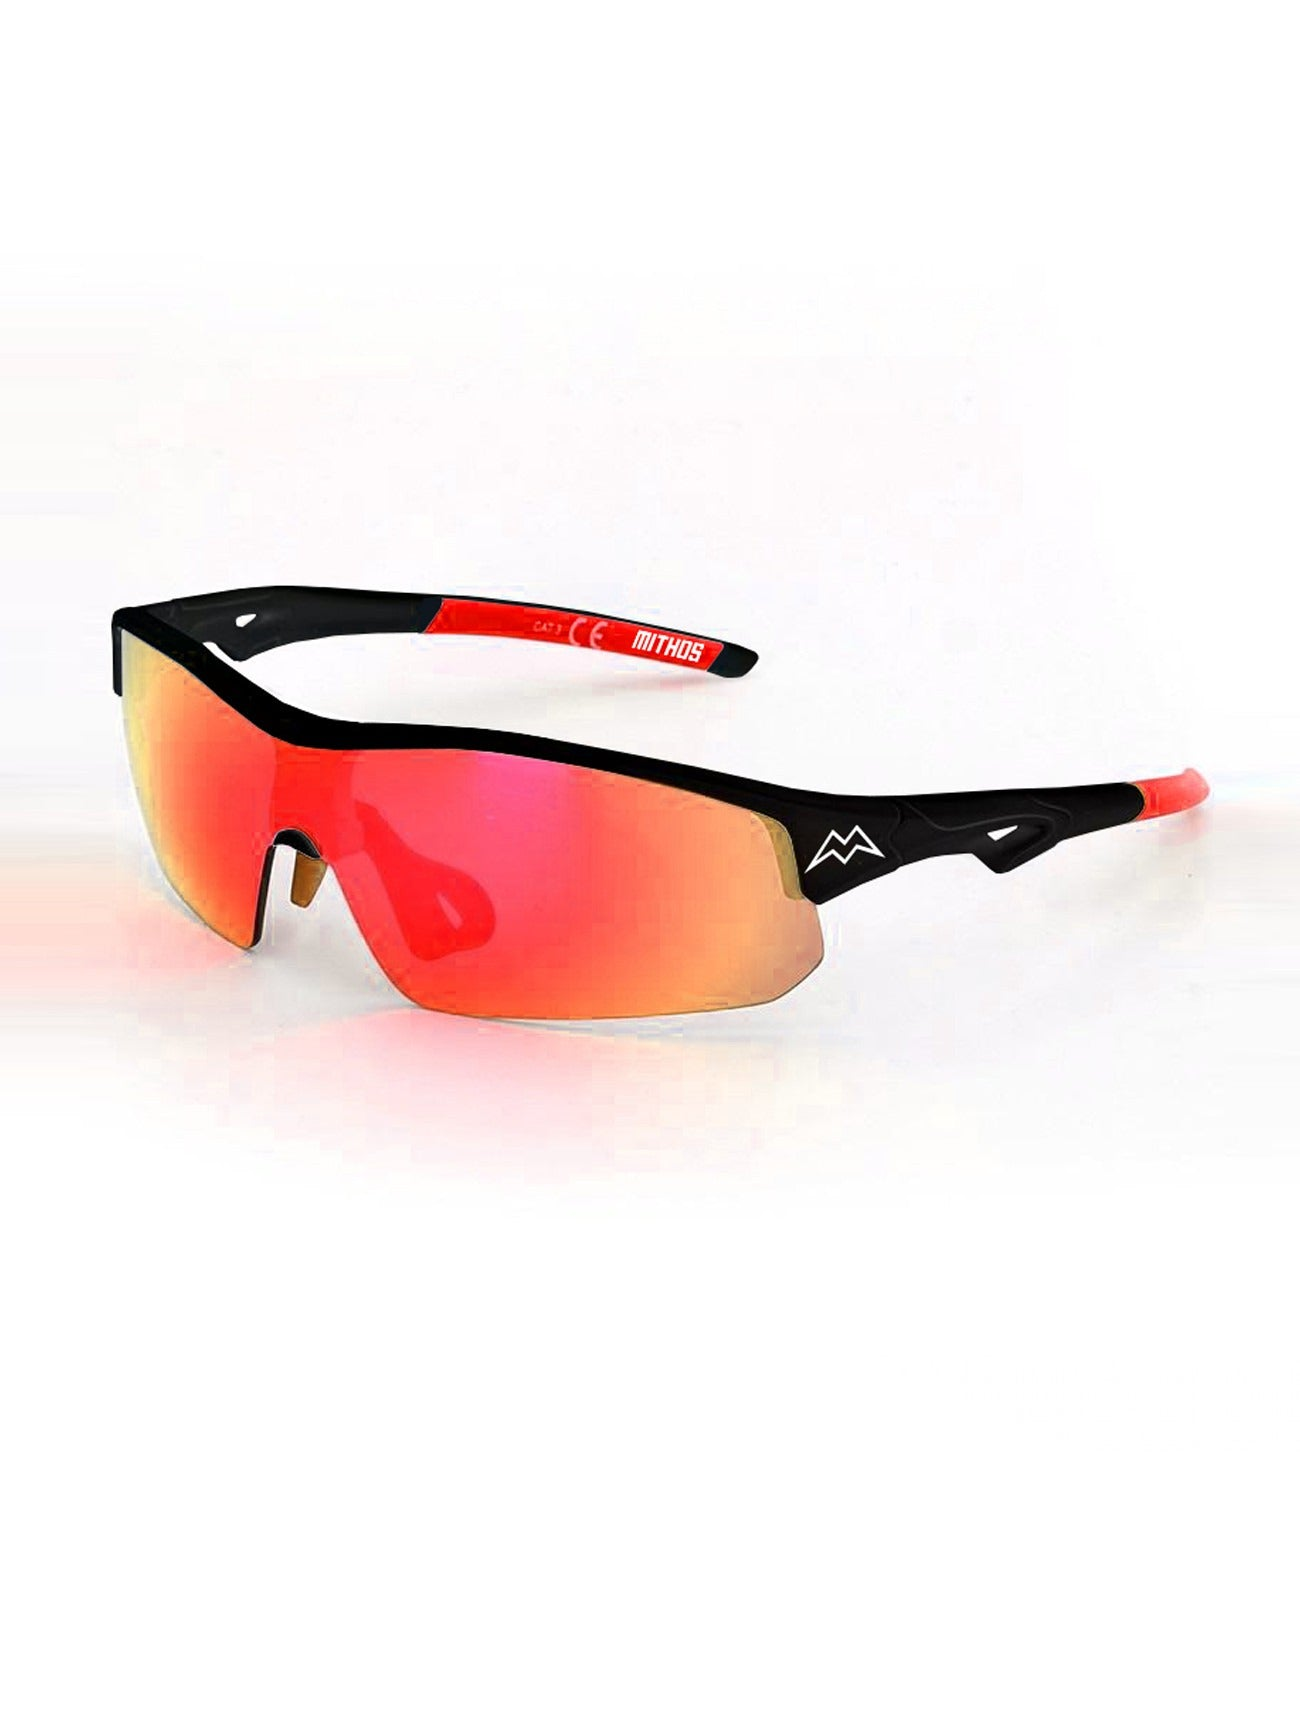 Mithos Sunglasses CYCLING